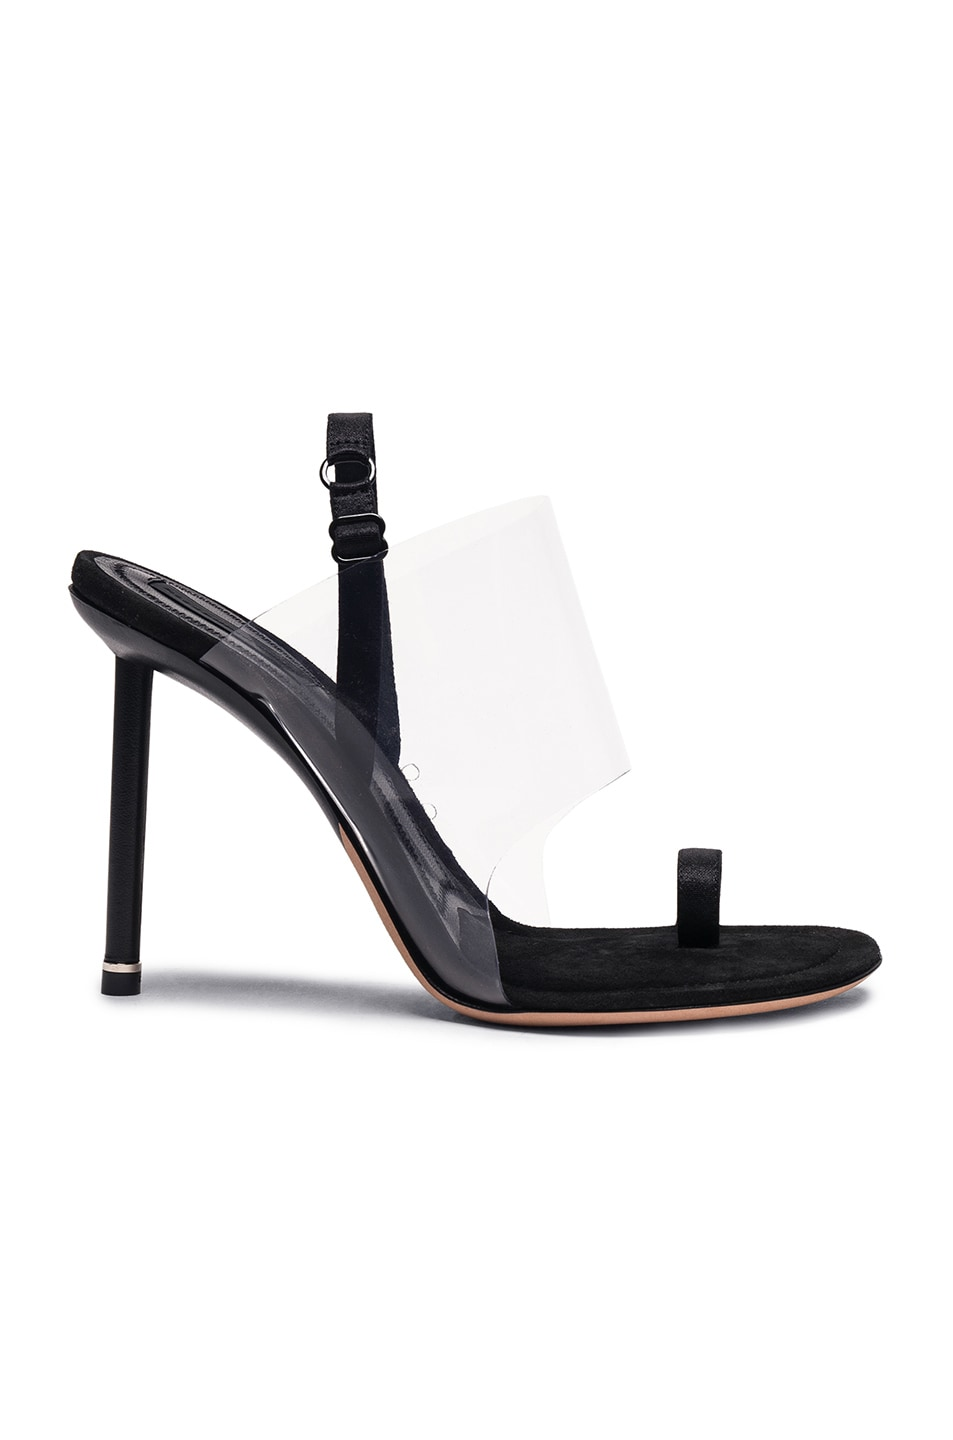 Image 1 of Alexander Wang PVC Kaia Heels in Black